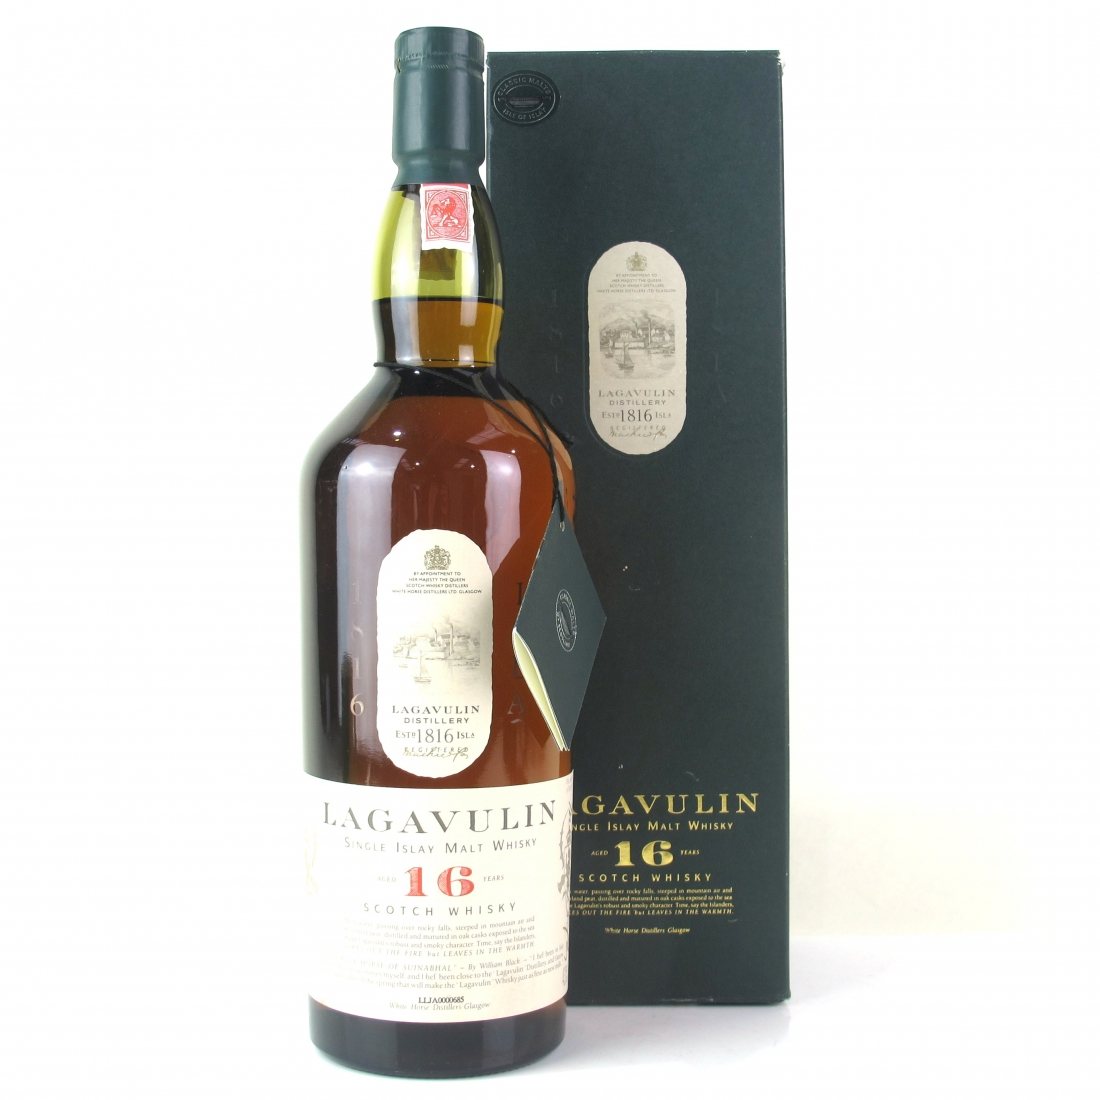 Lagavulin 16 Year Old White Horse 1 Litre